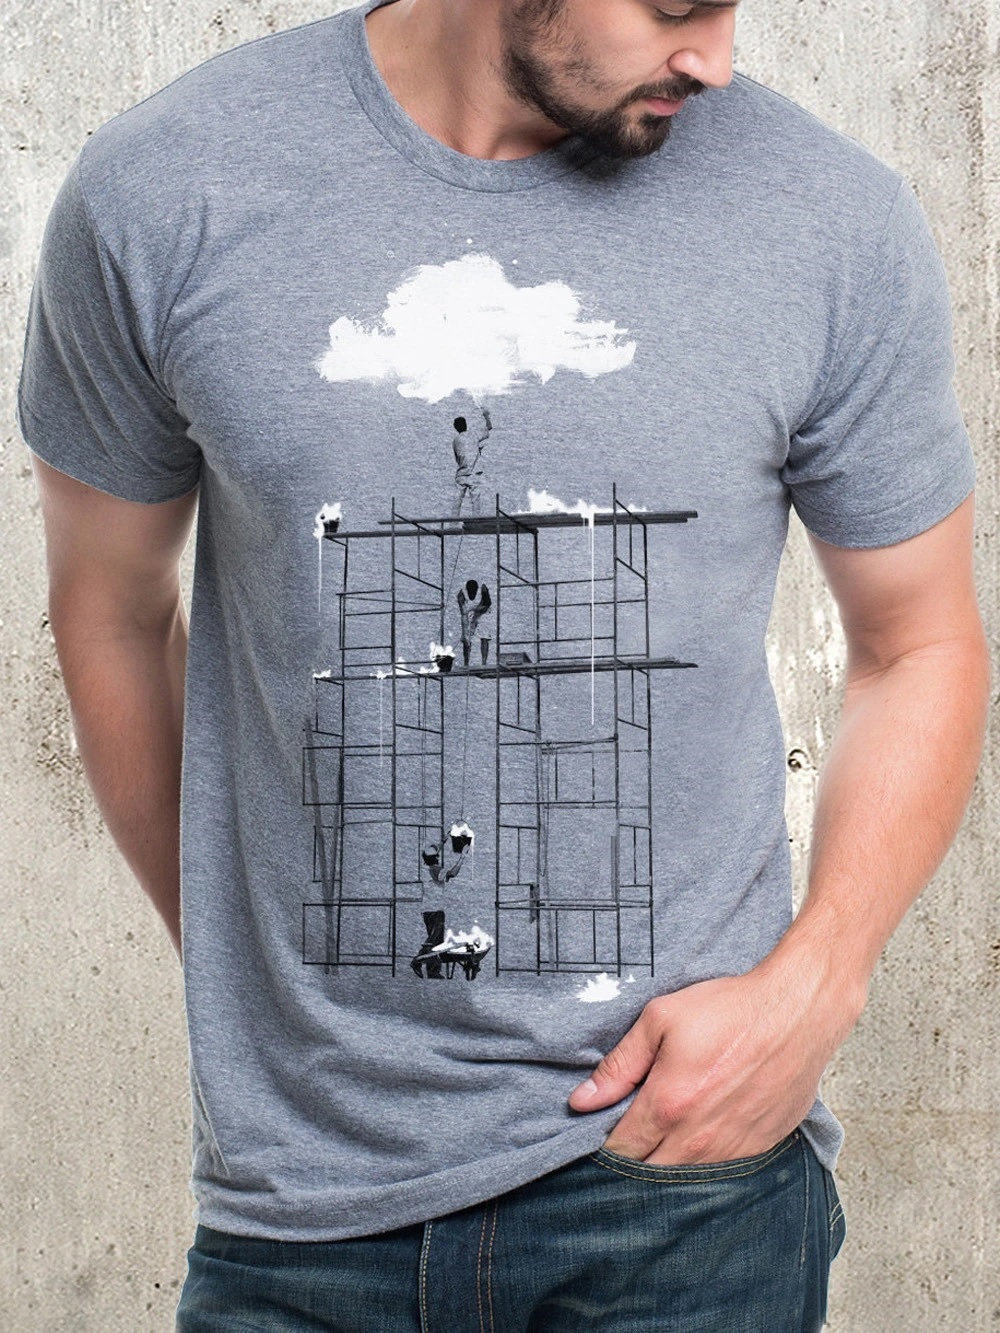 Cloud Factory Tee